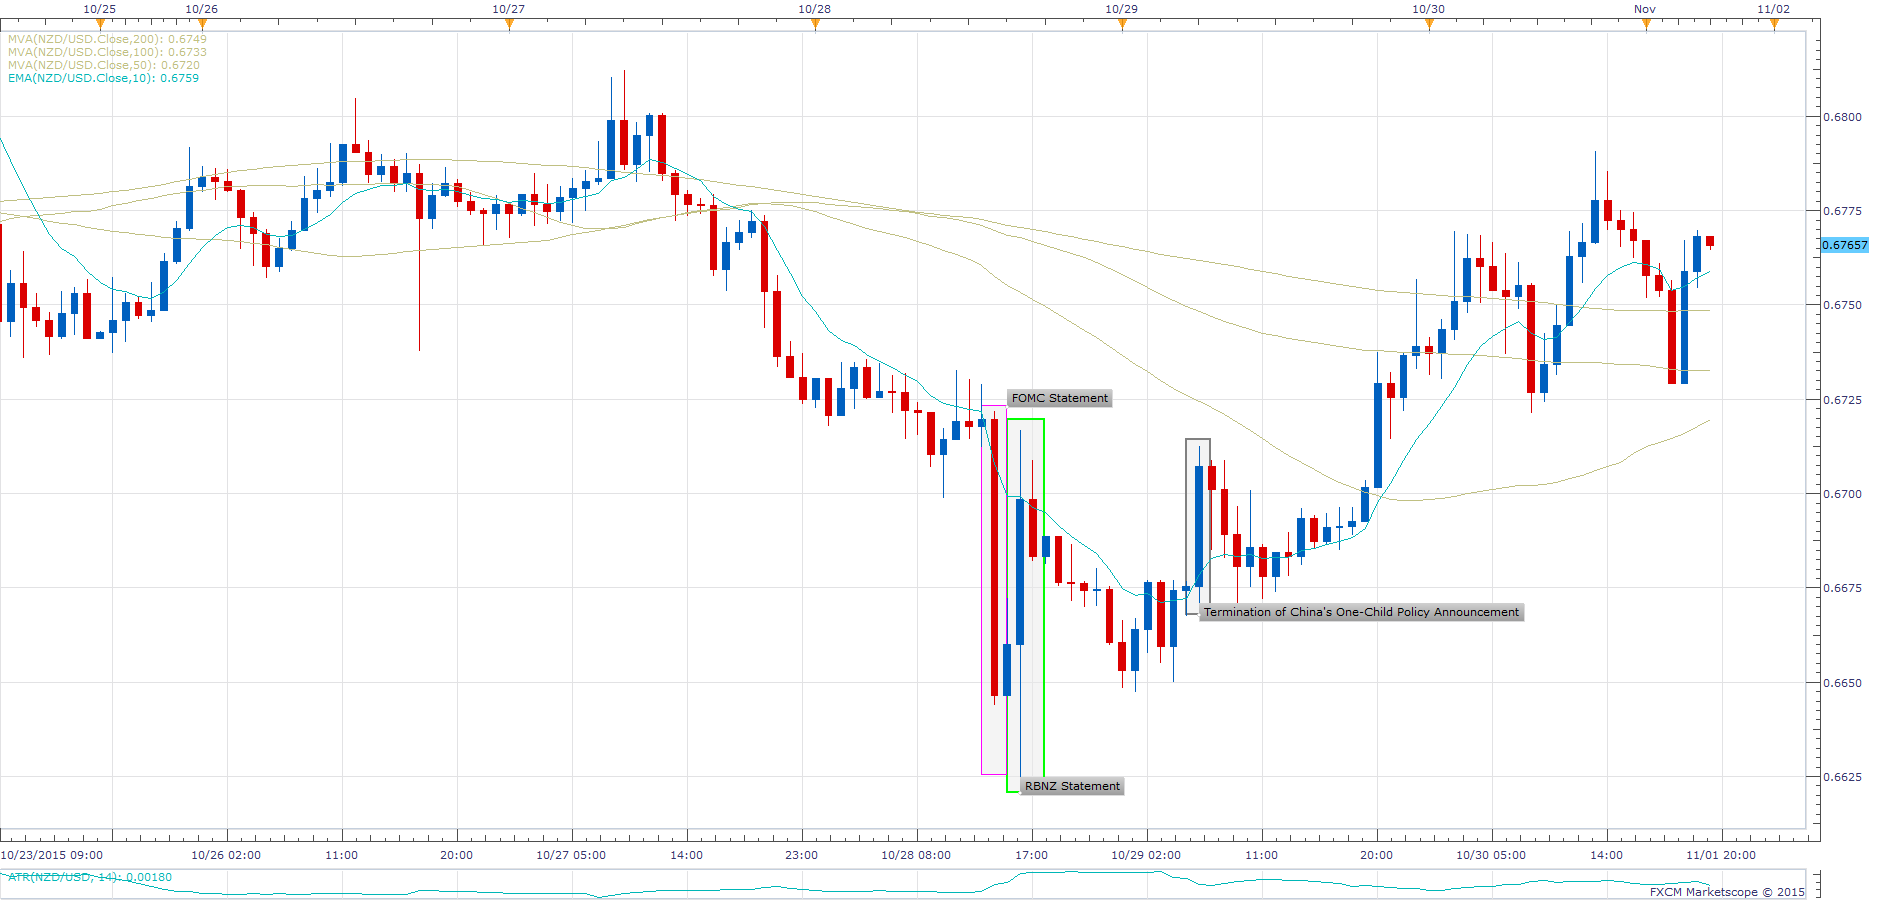 NZD/USD - Hourly Chart